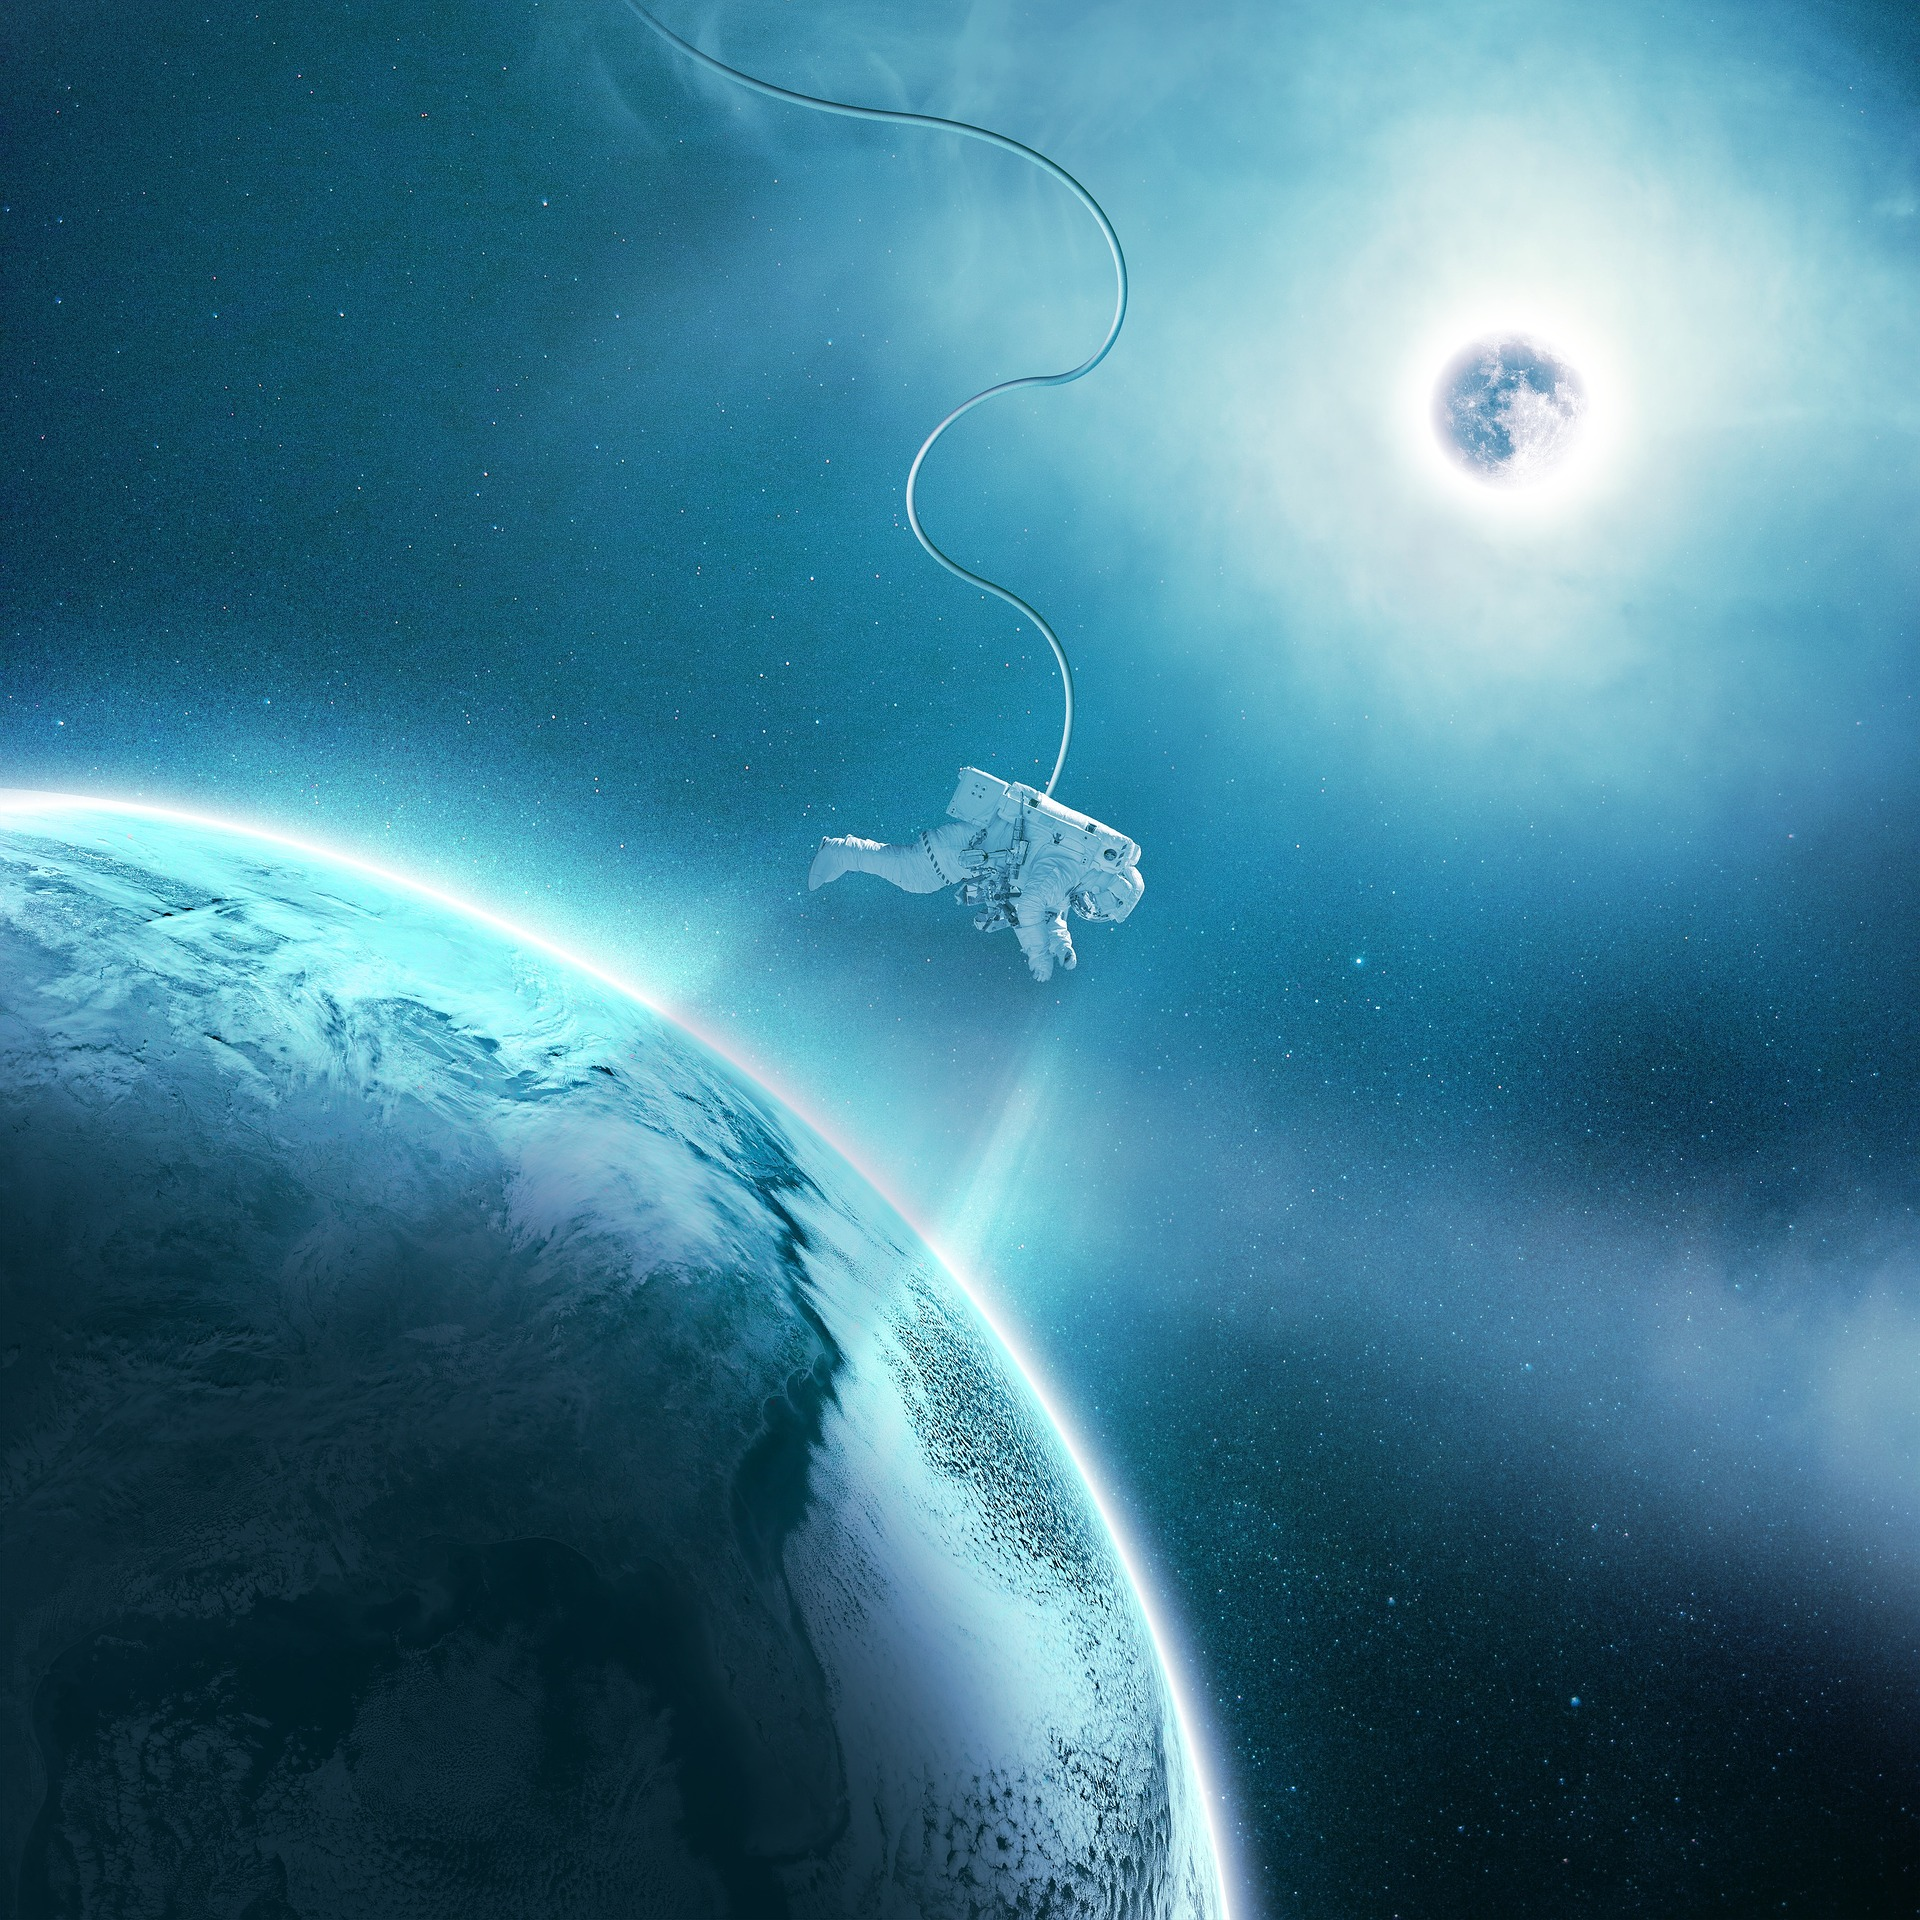 Astronaut in Space, Activity, Astronaut, Earth, Gravity, HQ Photo